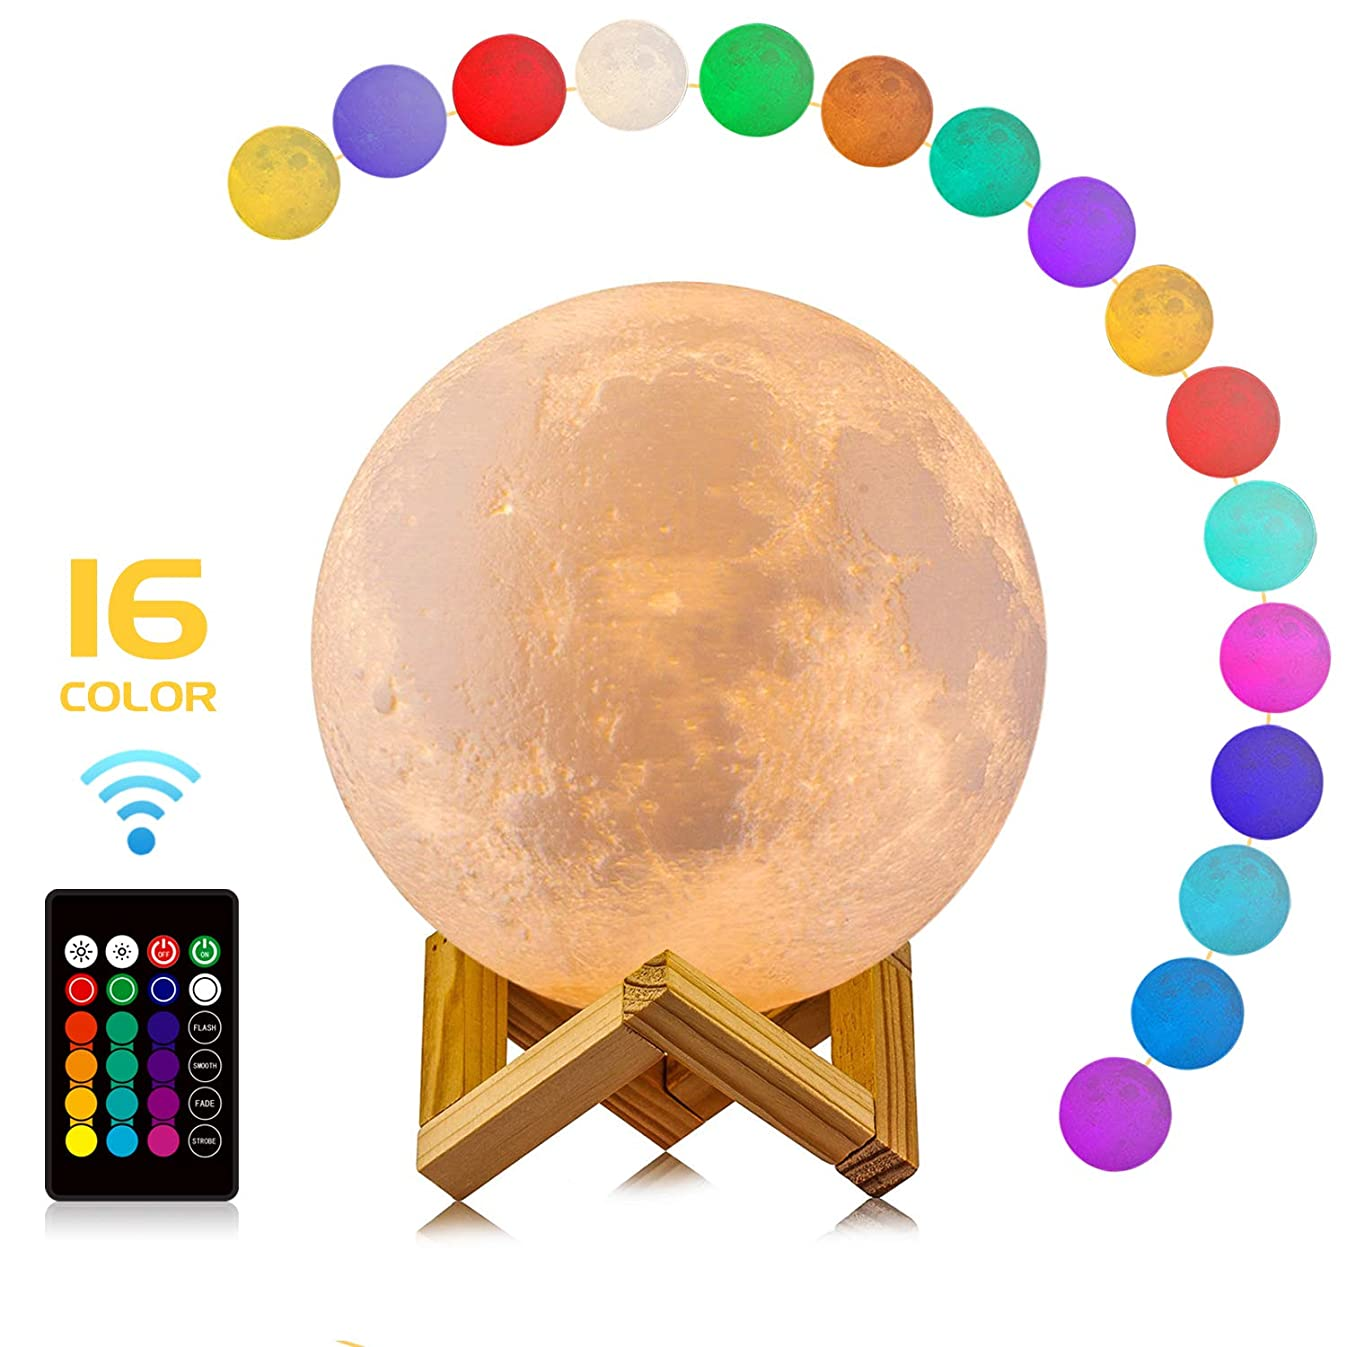 Moon Lamp, LOGROTATE 16 Colors LED 3D Print Moon Light with Stand & Remote&Touch Control and USB Rechargeable, Moon Light Lamps for Kids Lover Birthday Fathers Day Gifts(Diameter 4.8 INCH)